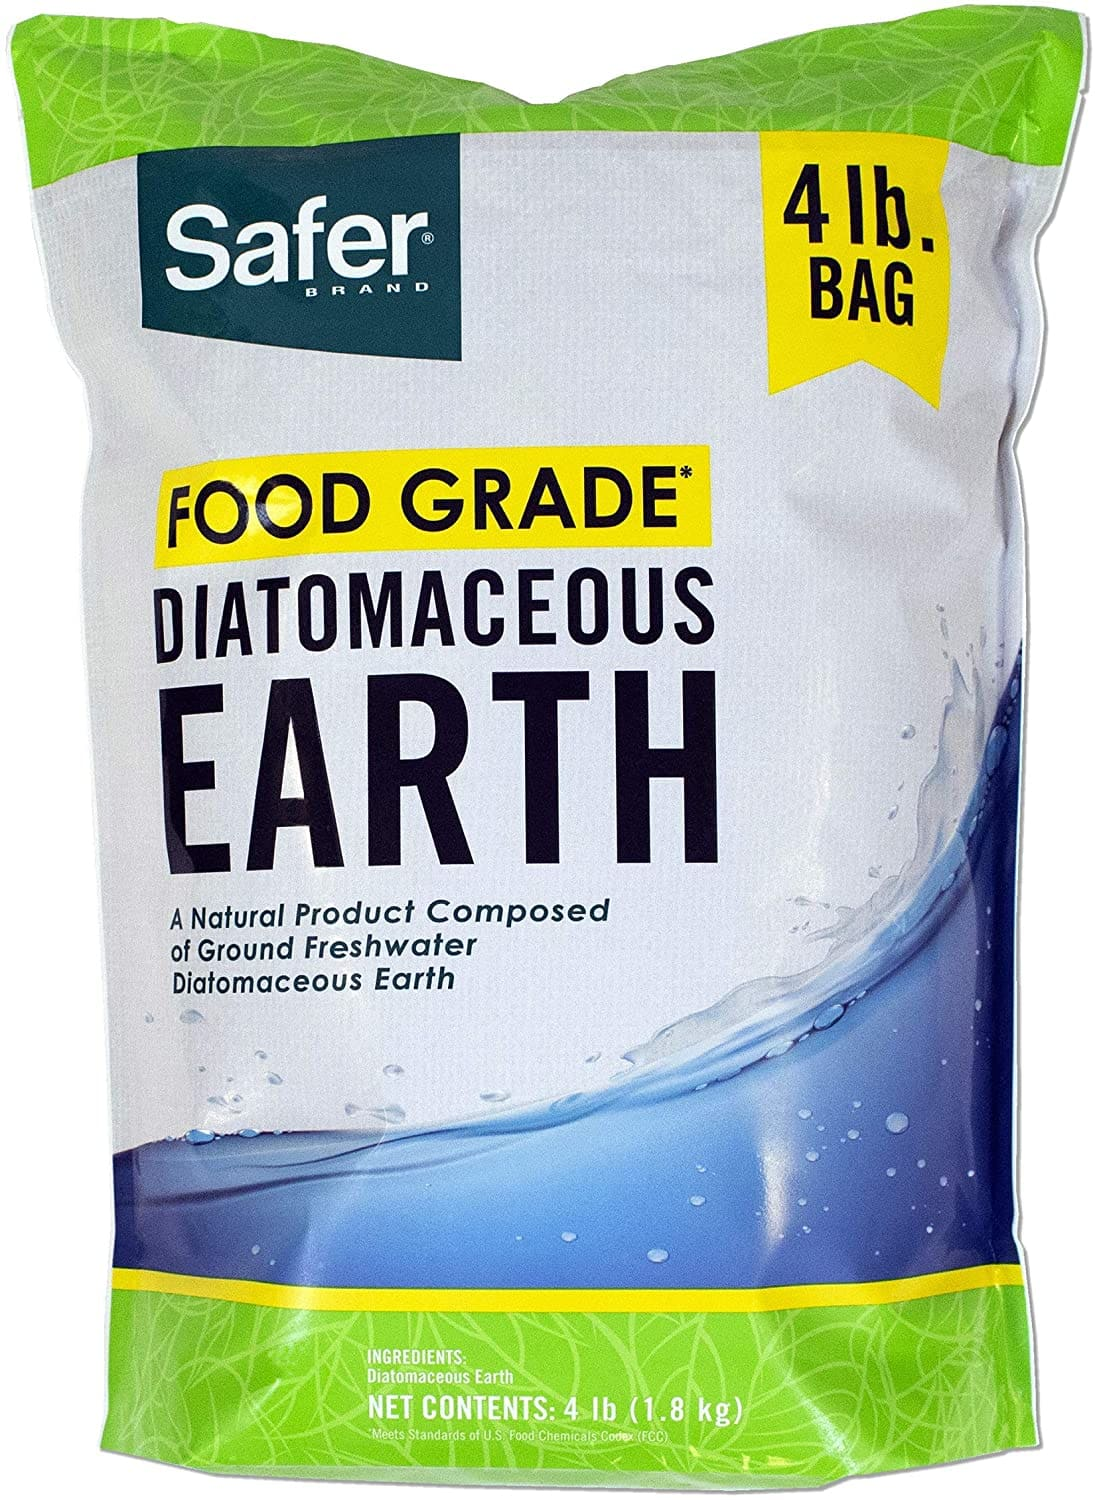 4 lbs Safer Brand Food Grade Diatomaceous Earth $5.92 + Free Prime Shipping (may not ship to some states)